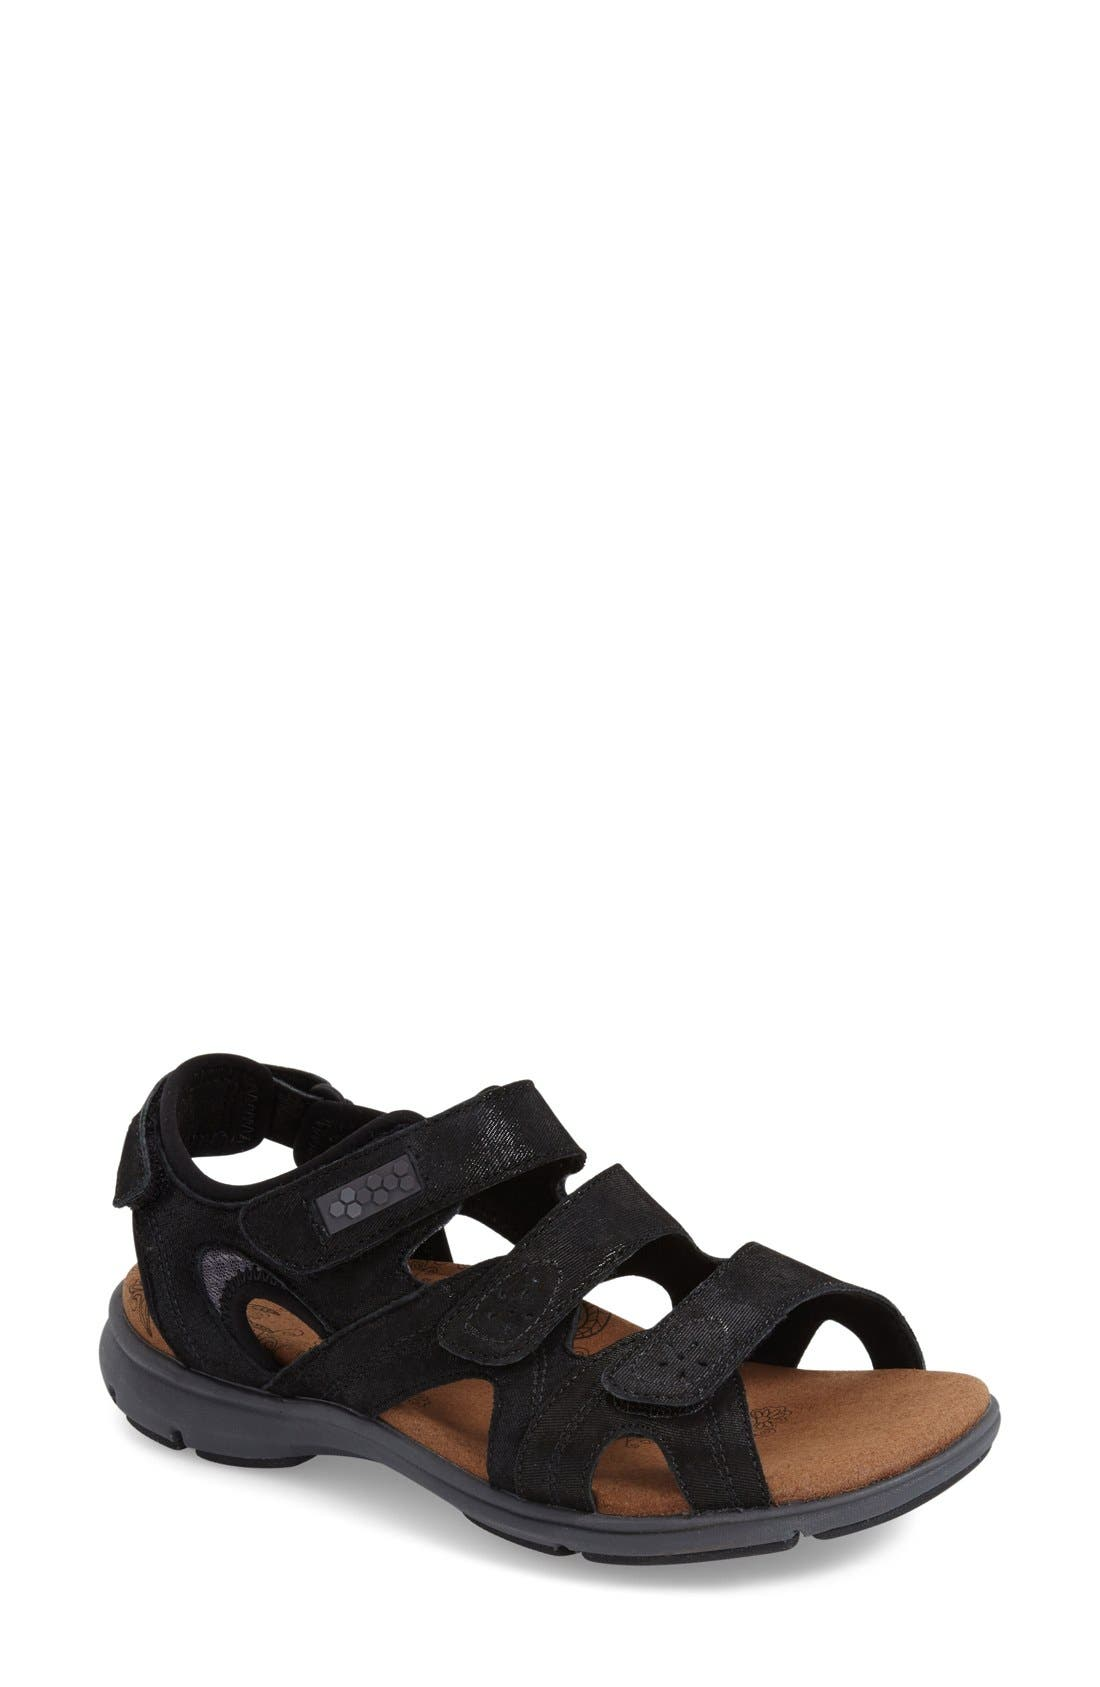 'REVsoleil' Sandal,                         Main,                         color, BLACK LEATHER